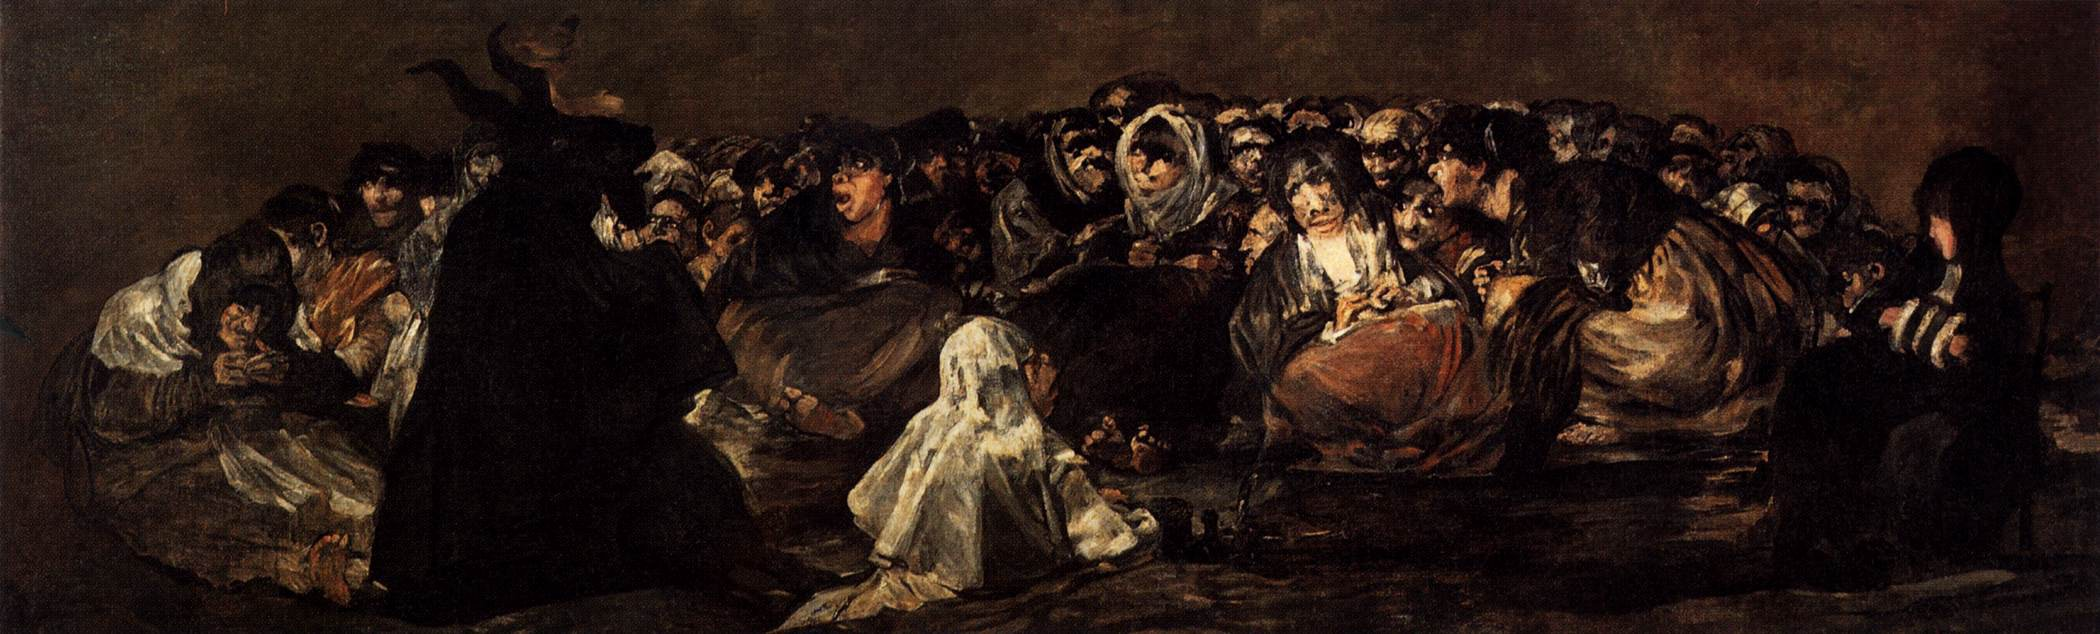 A painting of a frightened crowd looking at a dark, horned figure (Francisco Goya, Black Paintings)